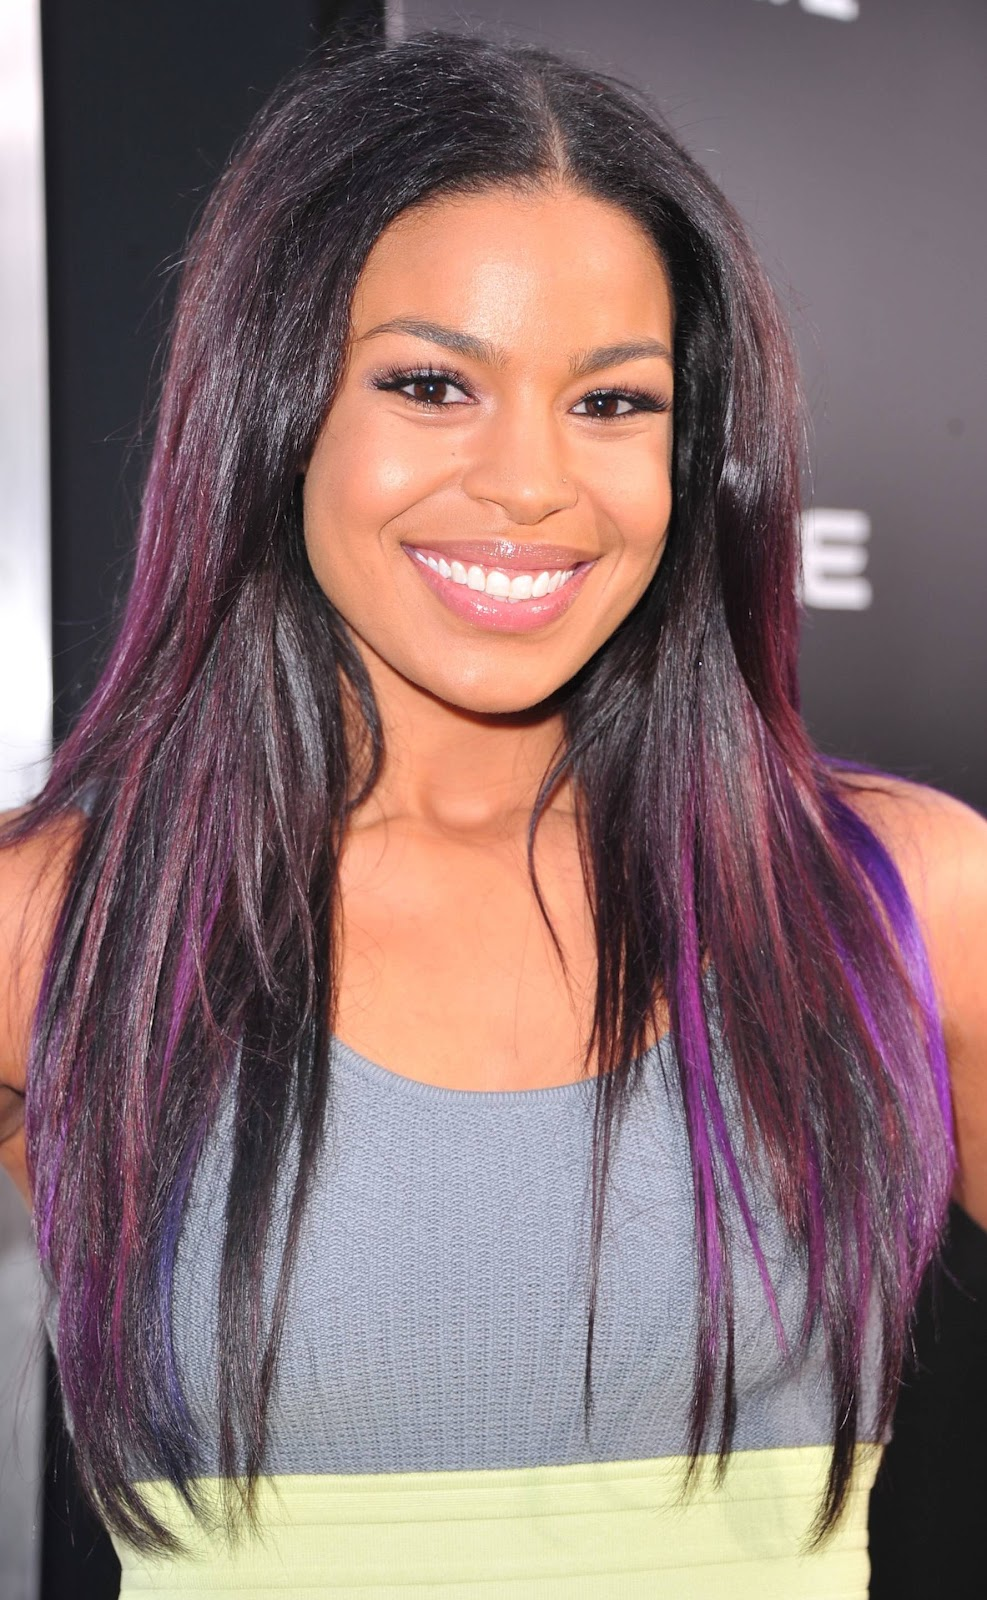 Black Hair With Purple Underneath Images & Pictures - Becuo